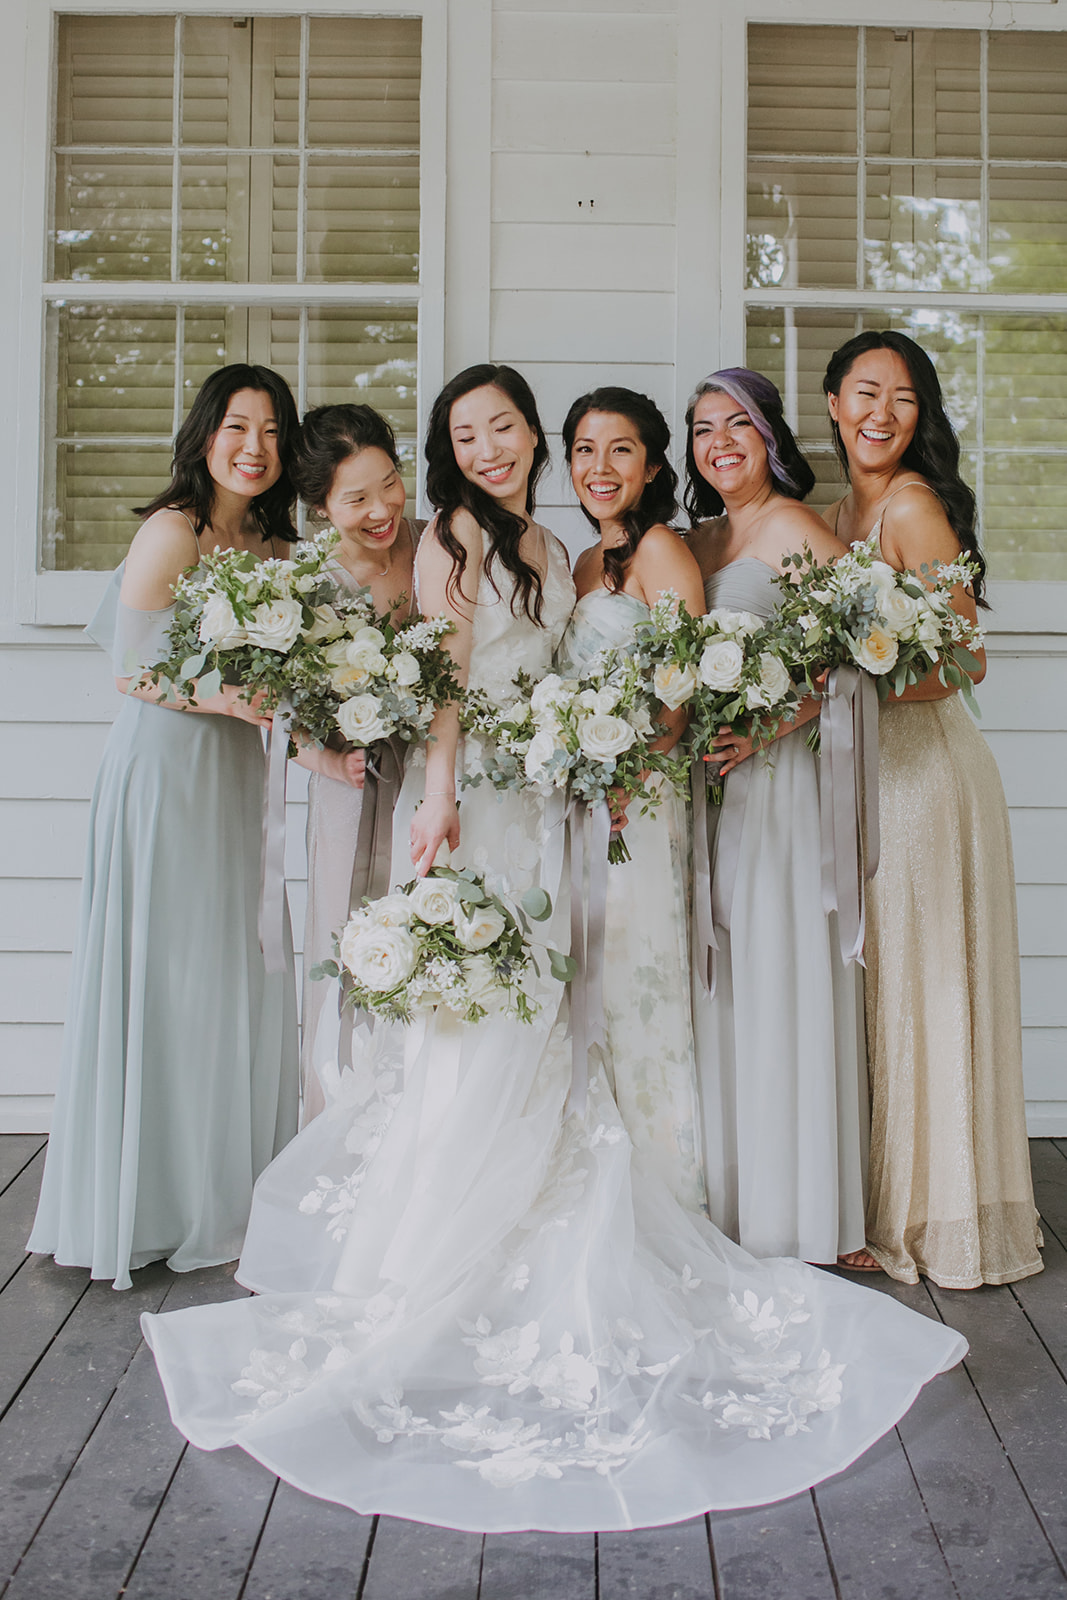 Pastel bridesmaids dresses: Summer Soiree at Cedarwood Weddings featured on Nashville Bride Guide